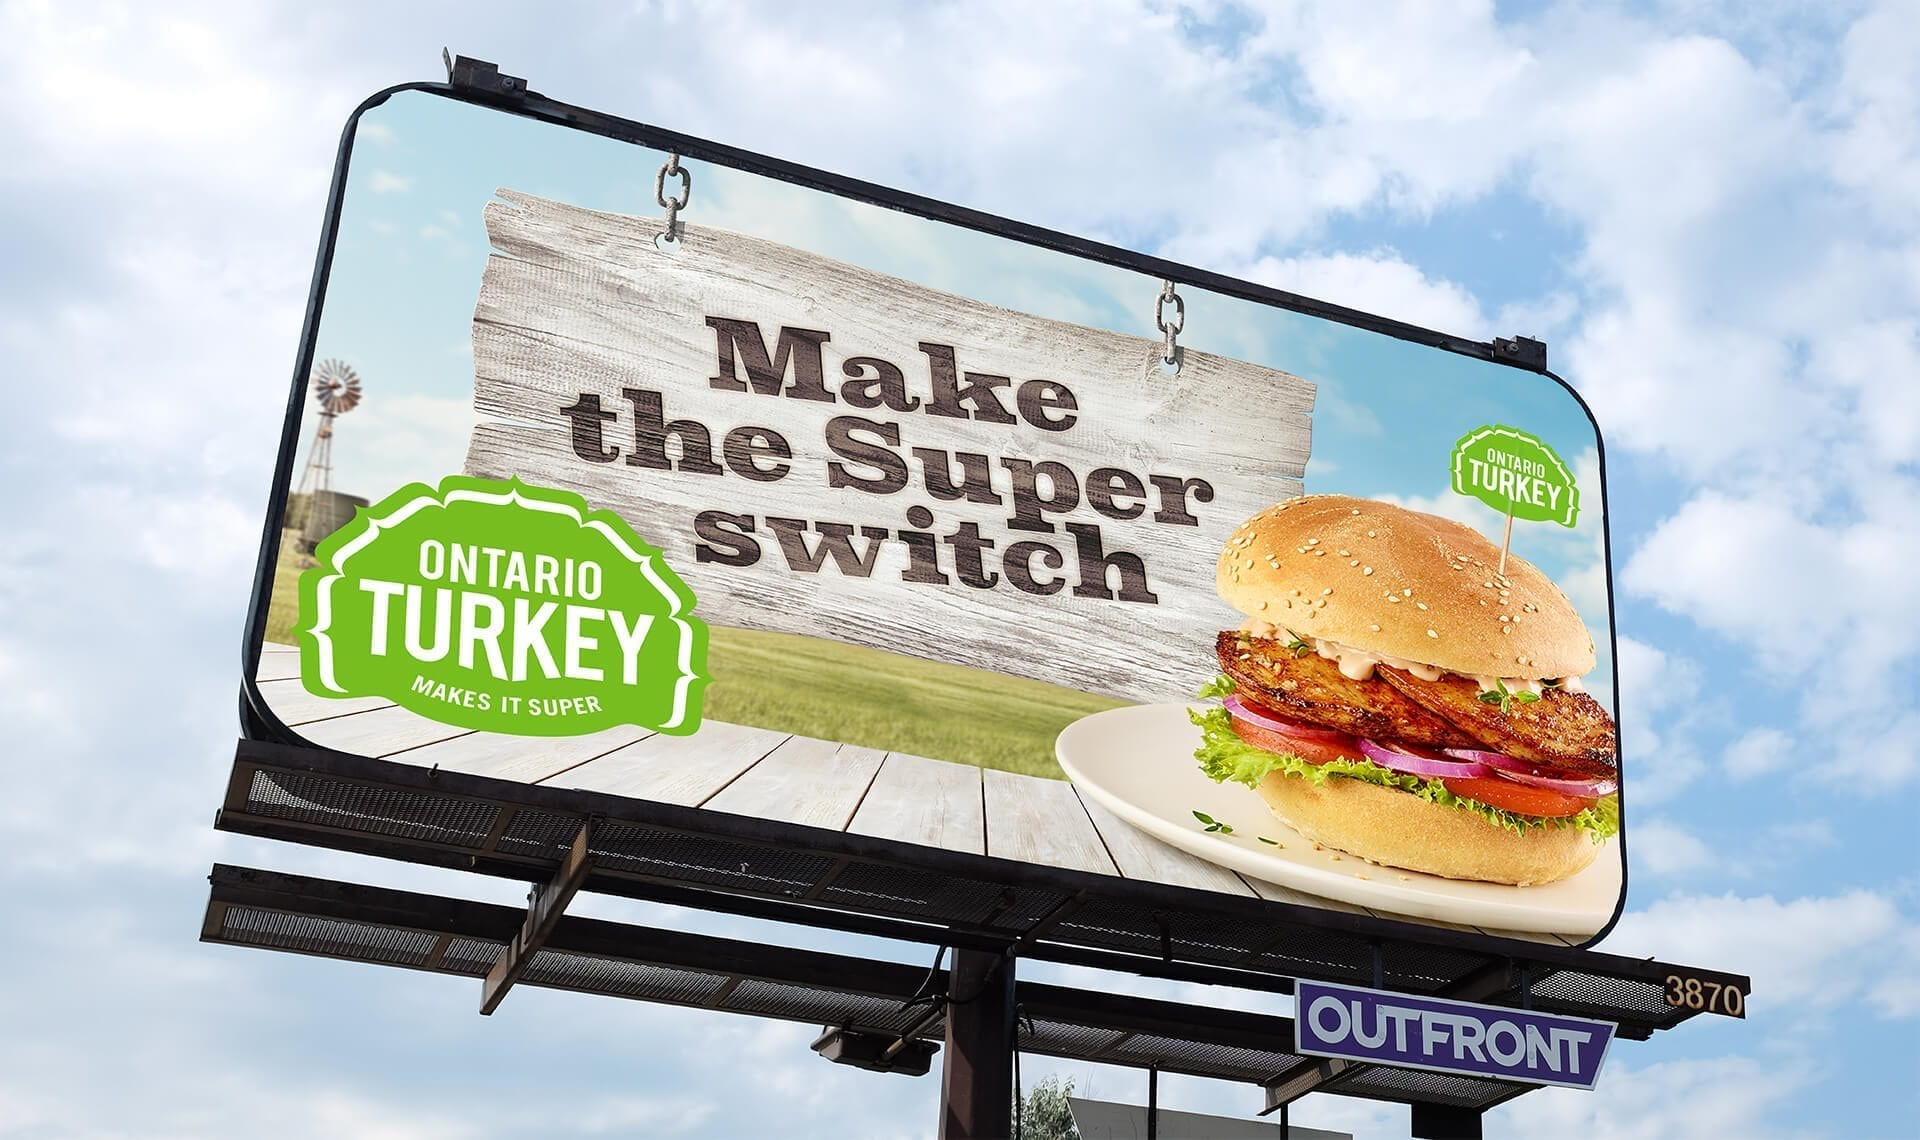 Ontario Turkey out-of-home billboard